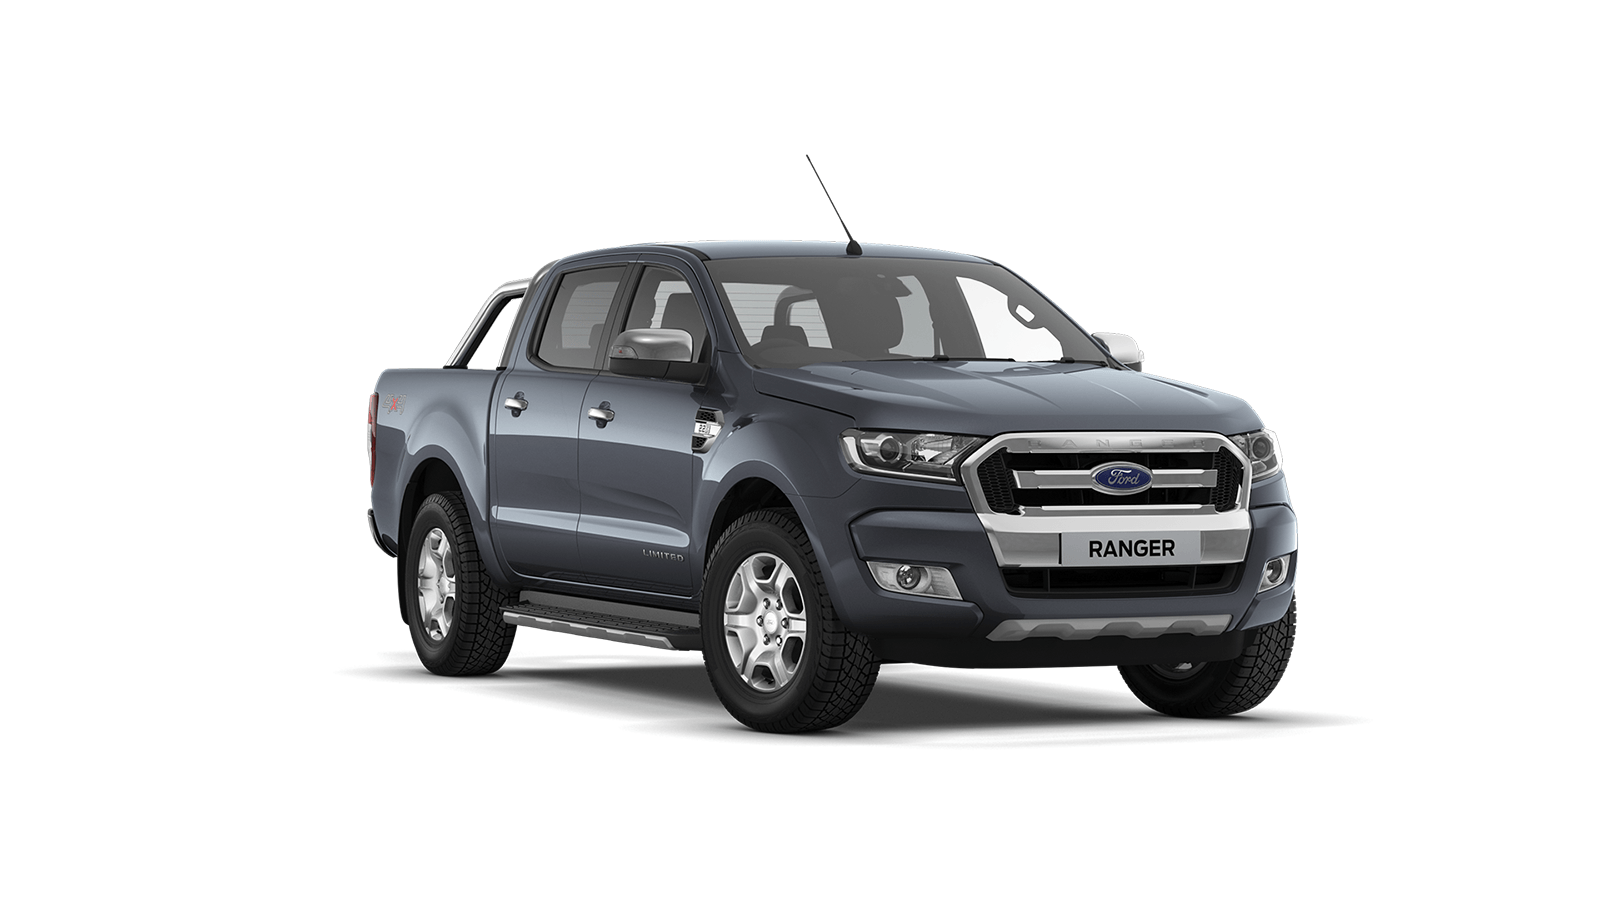 Ford Ranger Limited 2 2.2 TDCi 160PS at Browne & Day